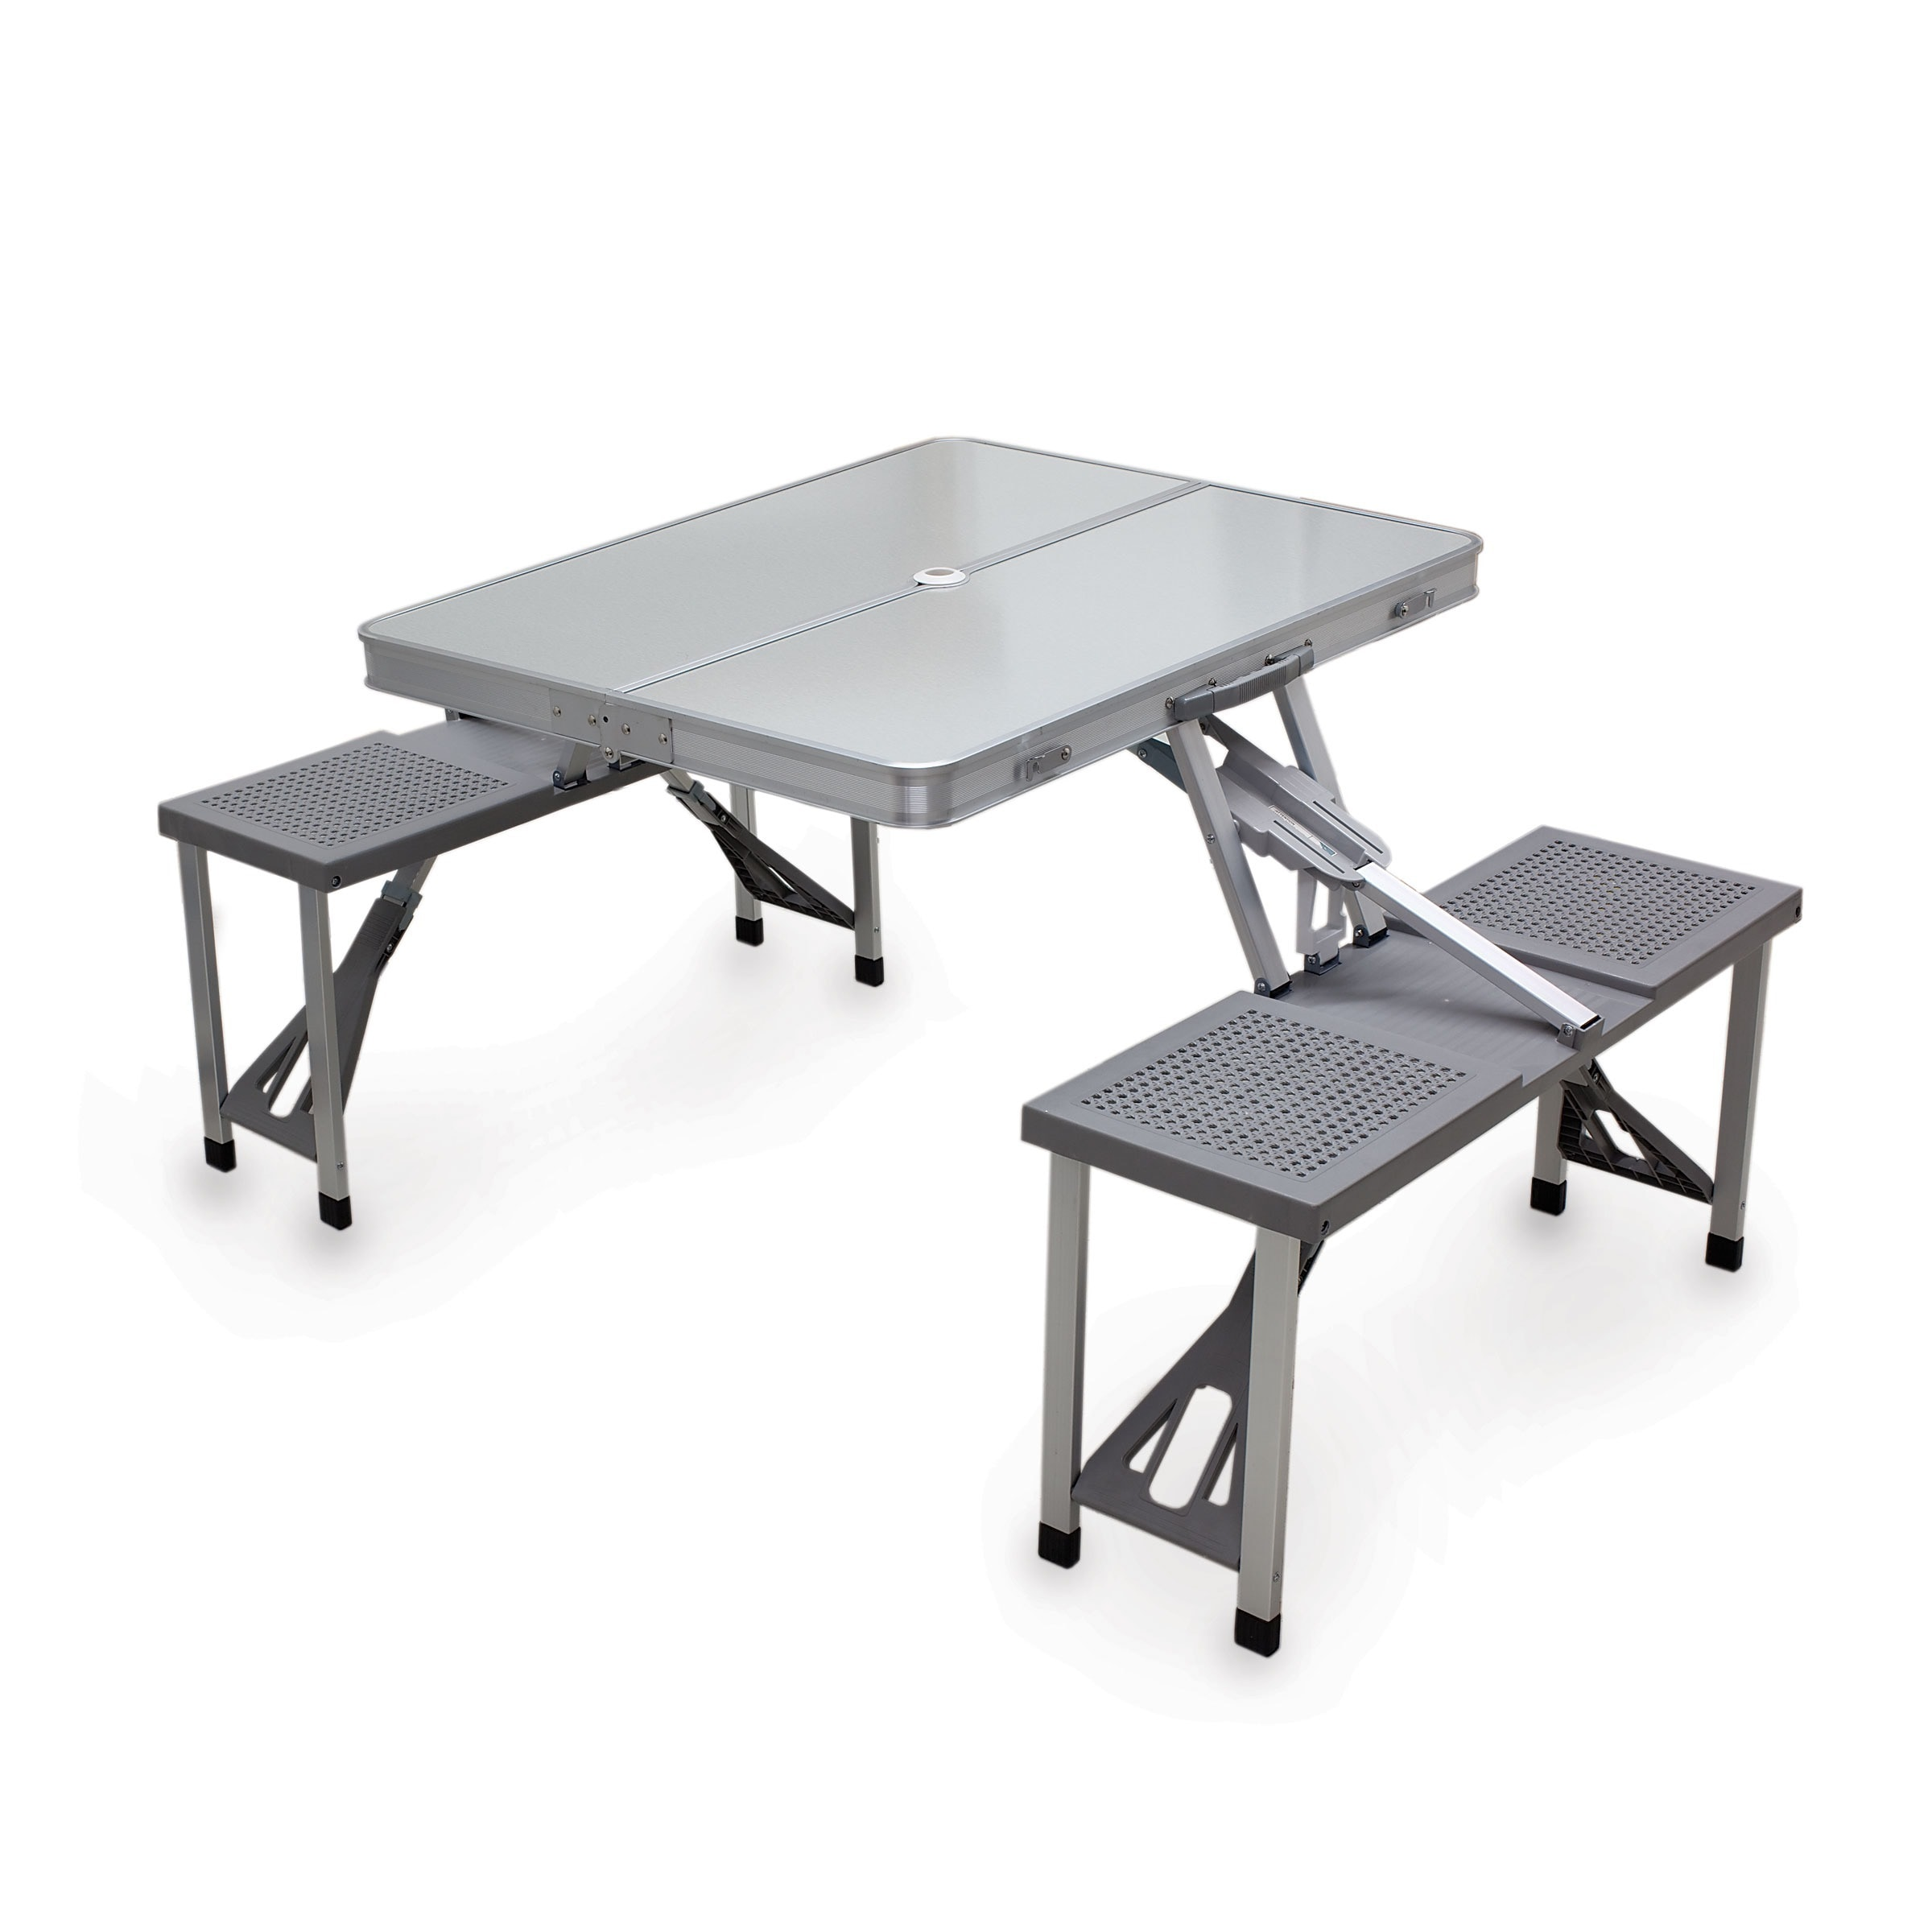 Oniva Aluminum Foldable/ Packable Picnic Table (Silver/Grey)